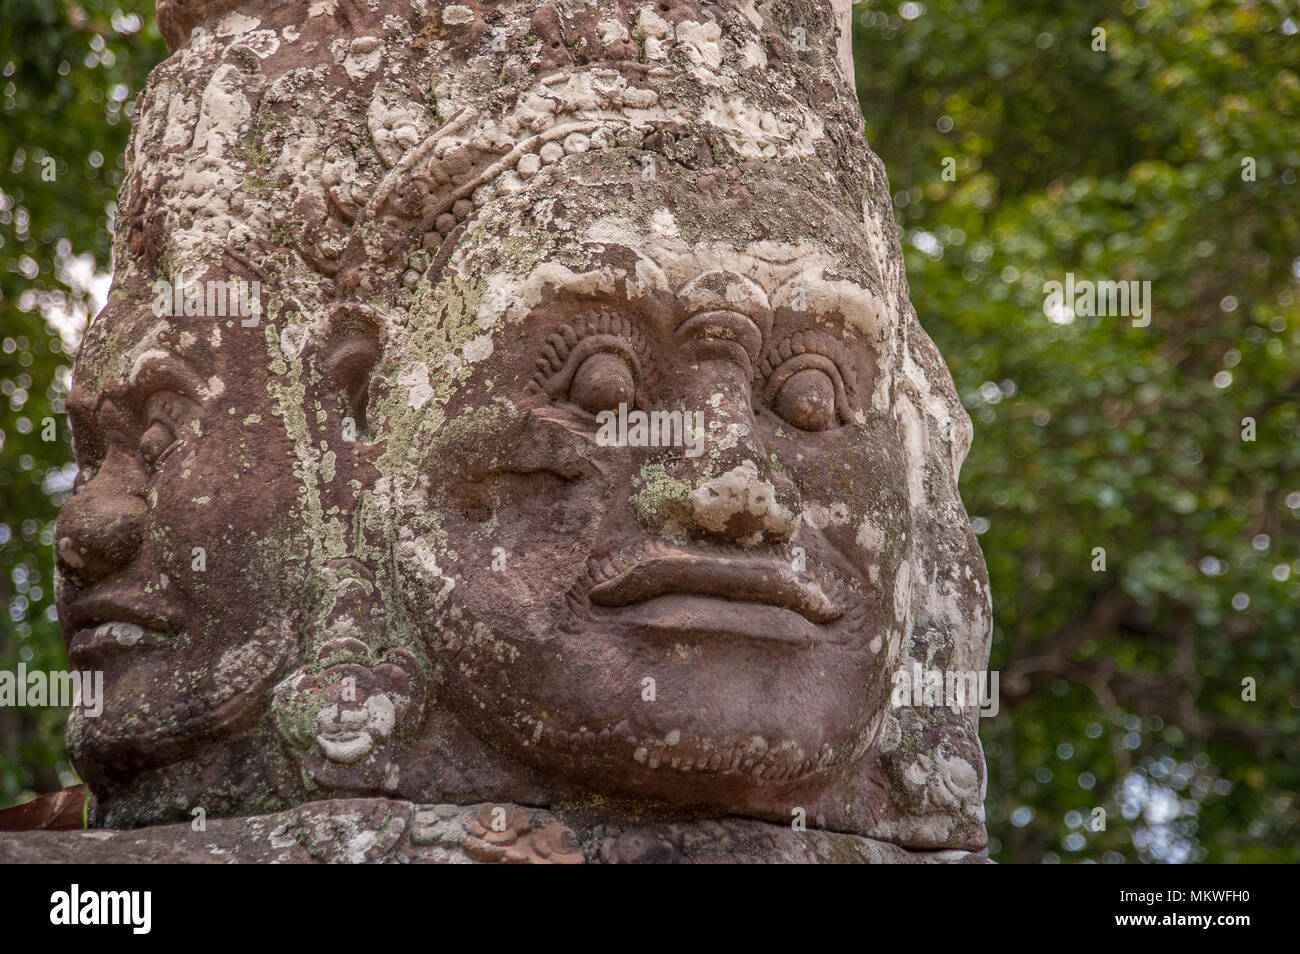 Giant Head With 4 Faces At Bayon Shows Classic Khmer Art And Architecture Only 2 Can Be Seen Against A Soft Green Background Of Trees